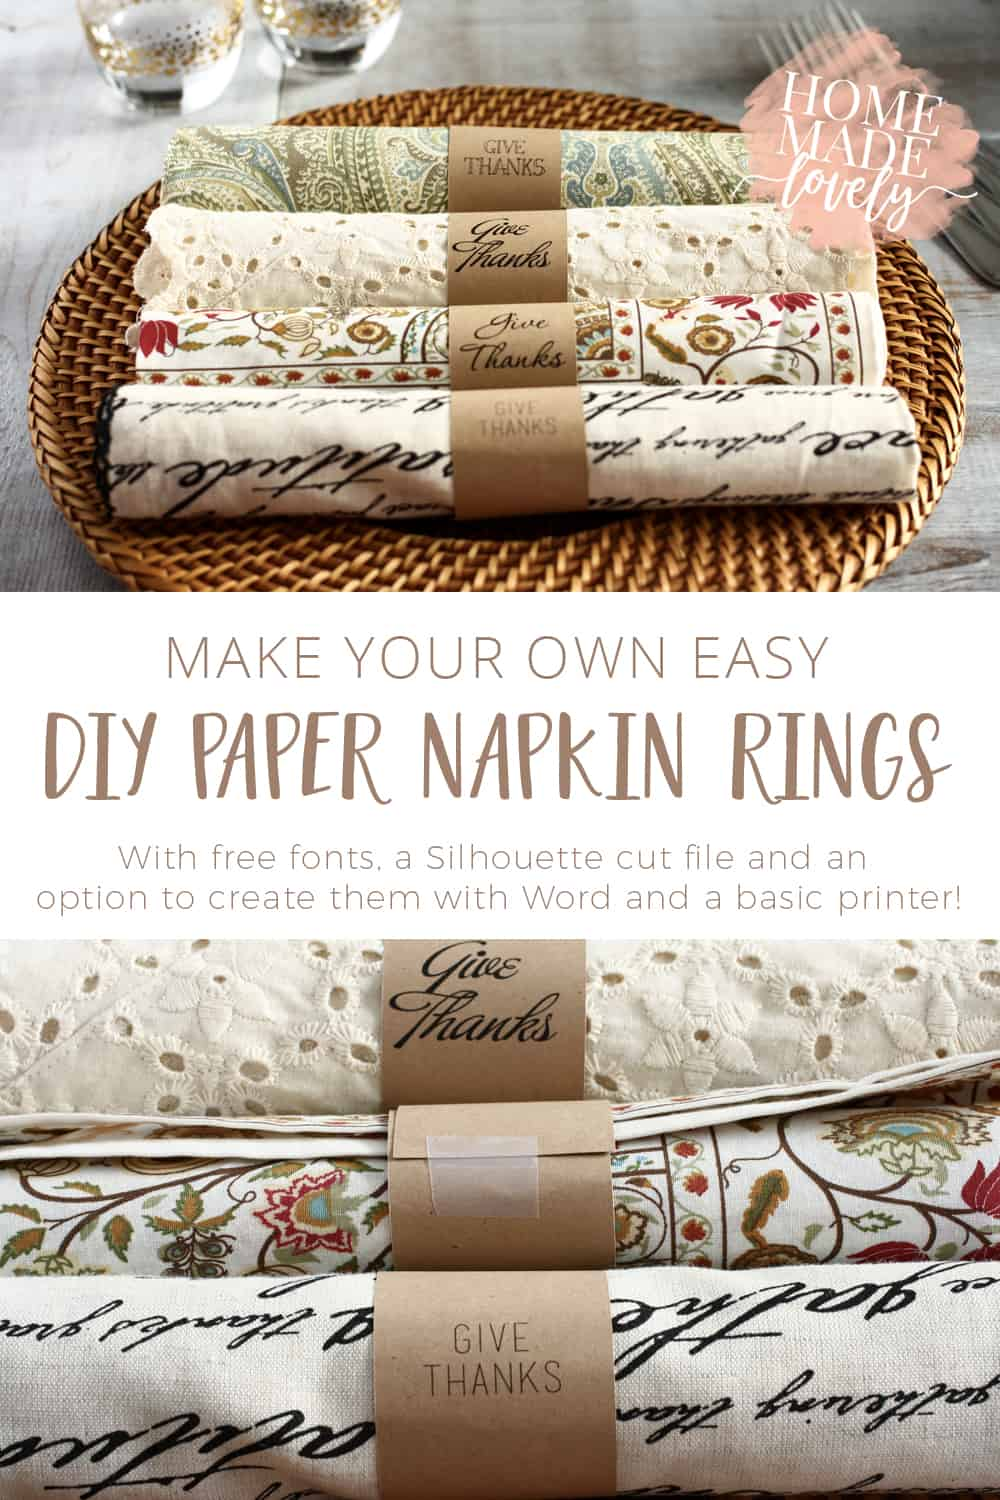 Easy Paper DIY Napkin Rings for Any Occasion + Fonts, Cut Files, Printable Template